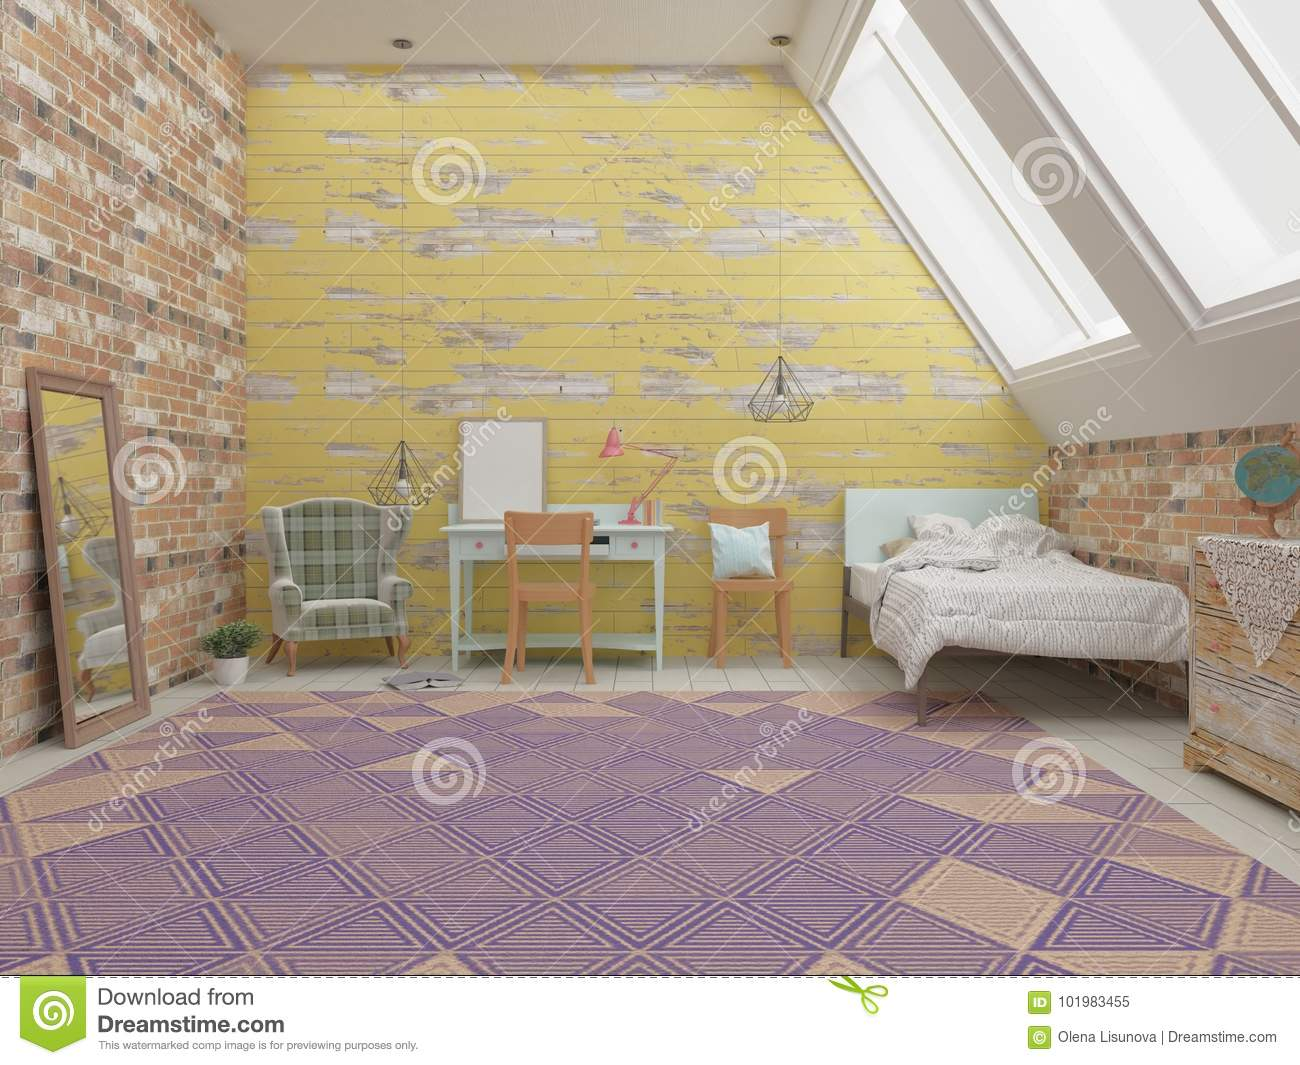 Kids room interior stock illustration. Illustration of furniture ...